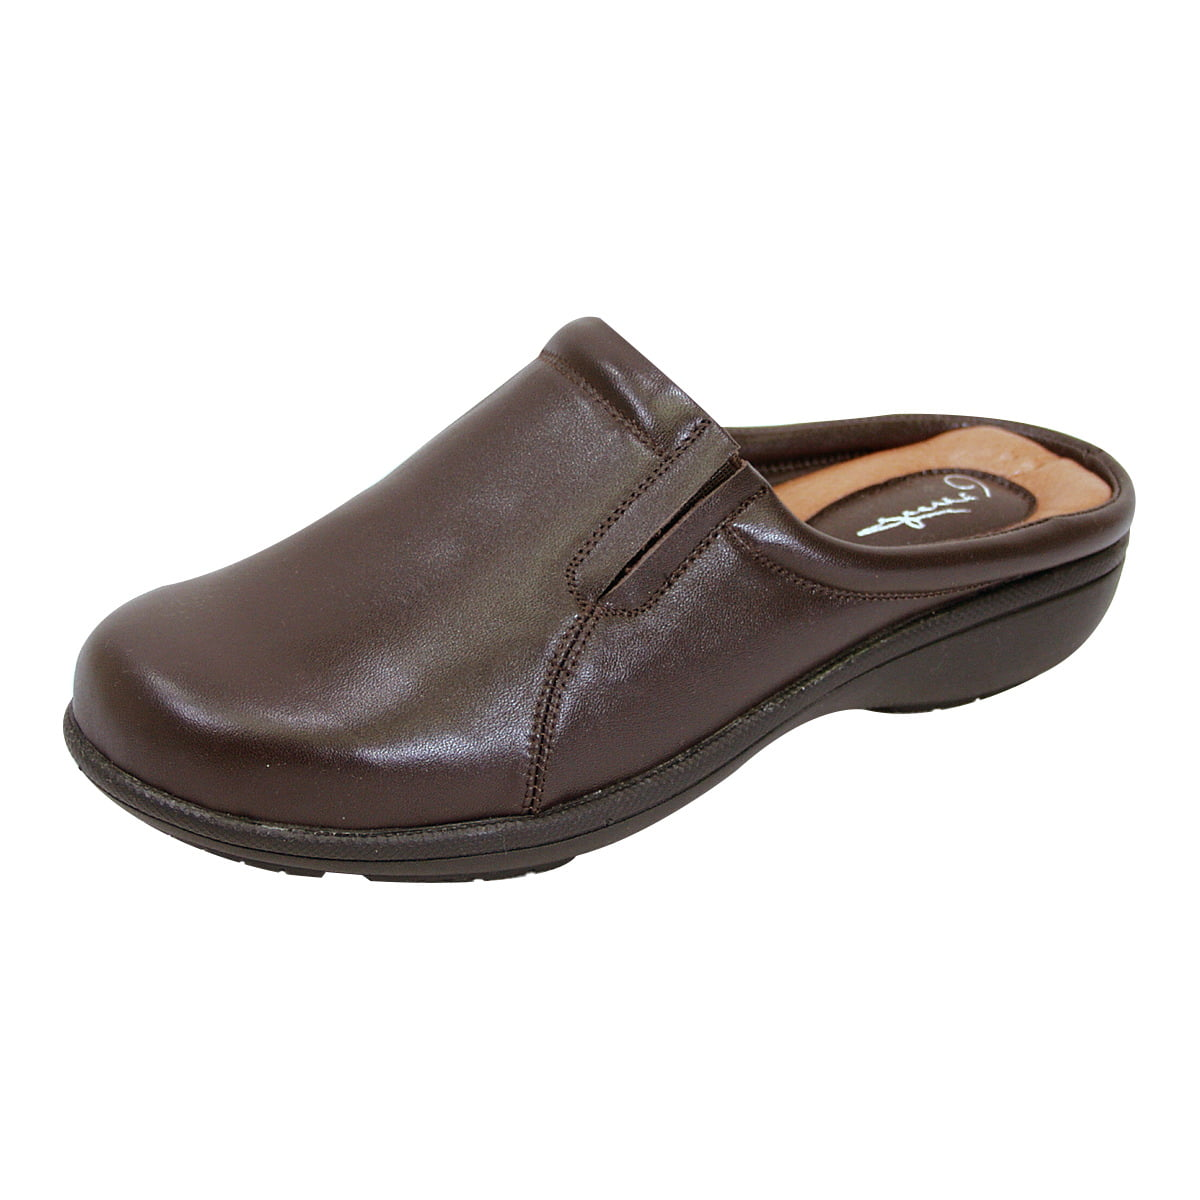 PEERAGE Mary Women Extra Wide Width Comfort Leather Clog BROWN 6.5